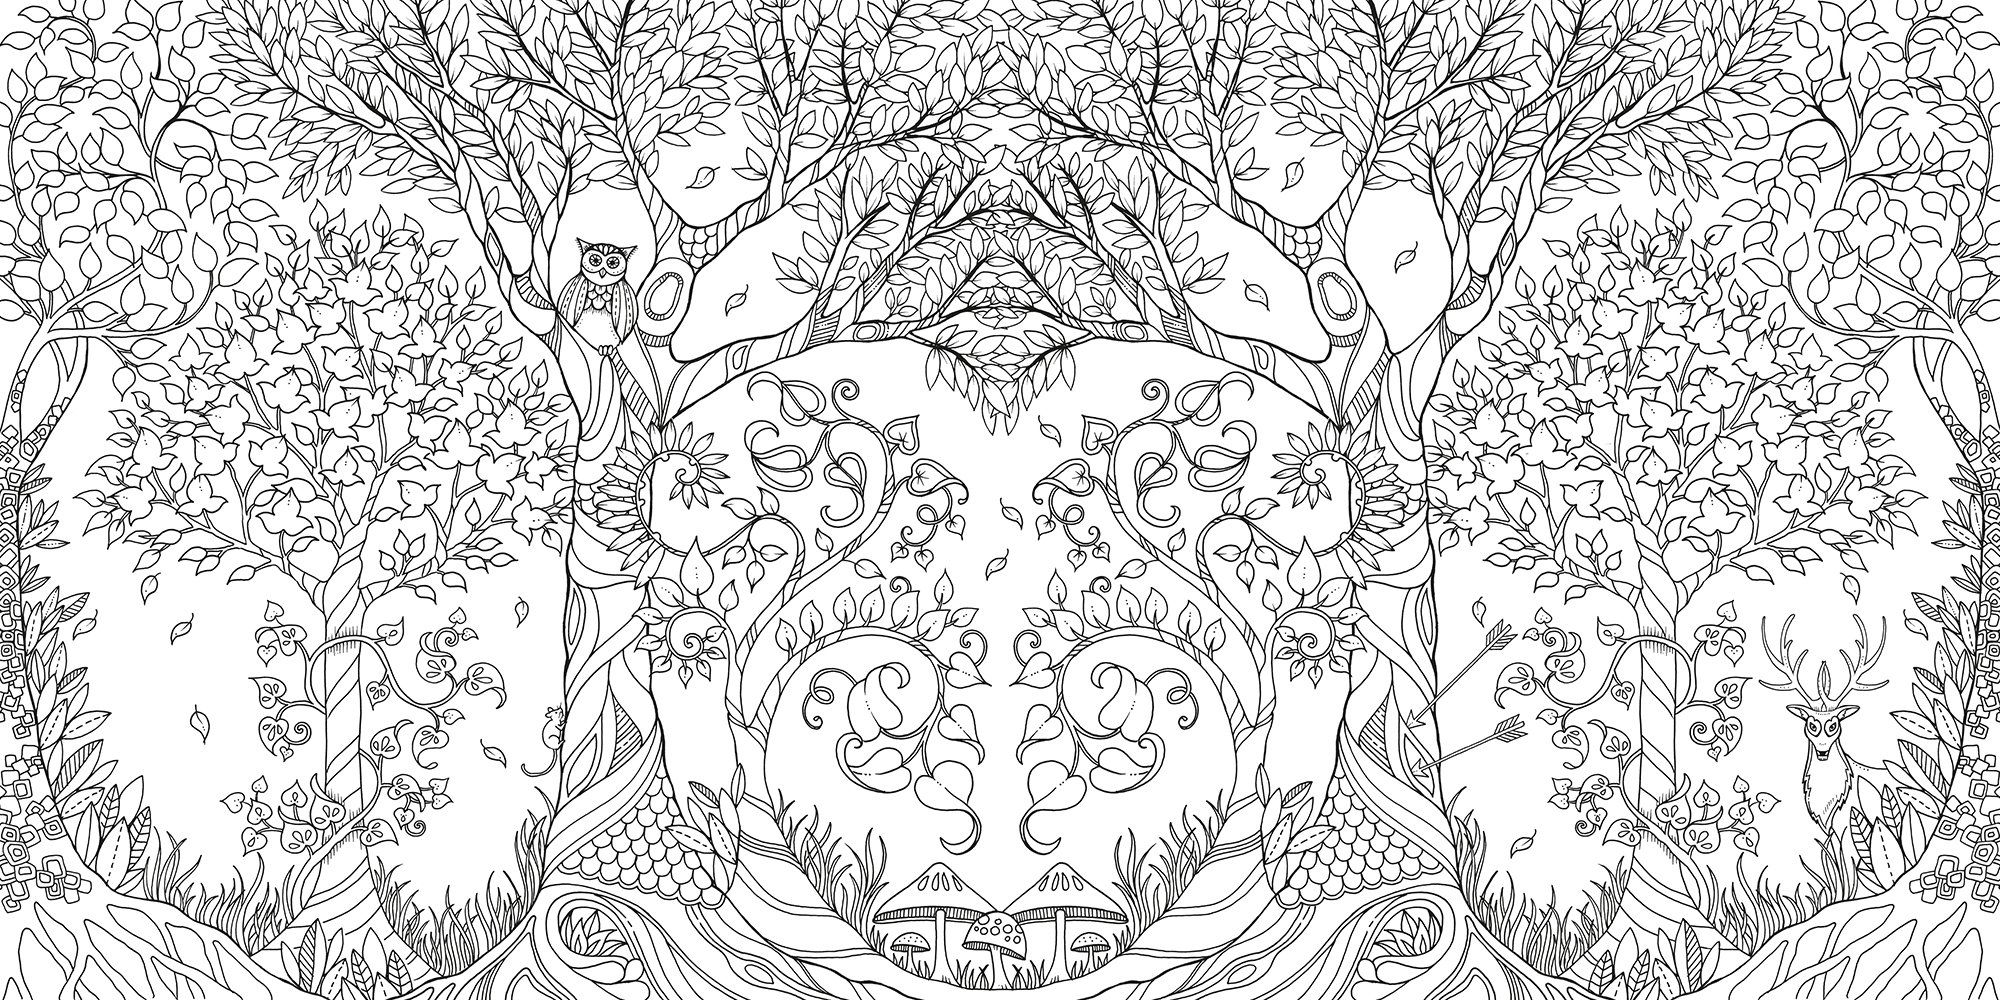 Enchanted Forest: An Inky Quest & Coloring Book: Amazon.de: Johanna ...